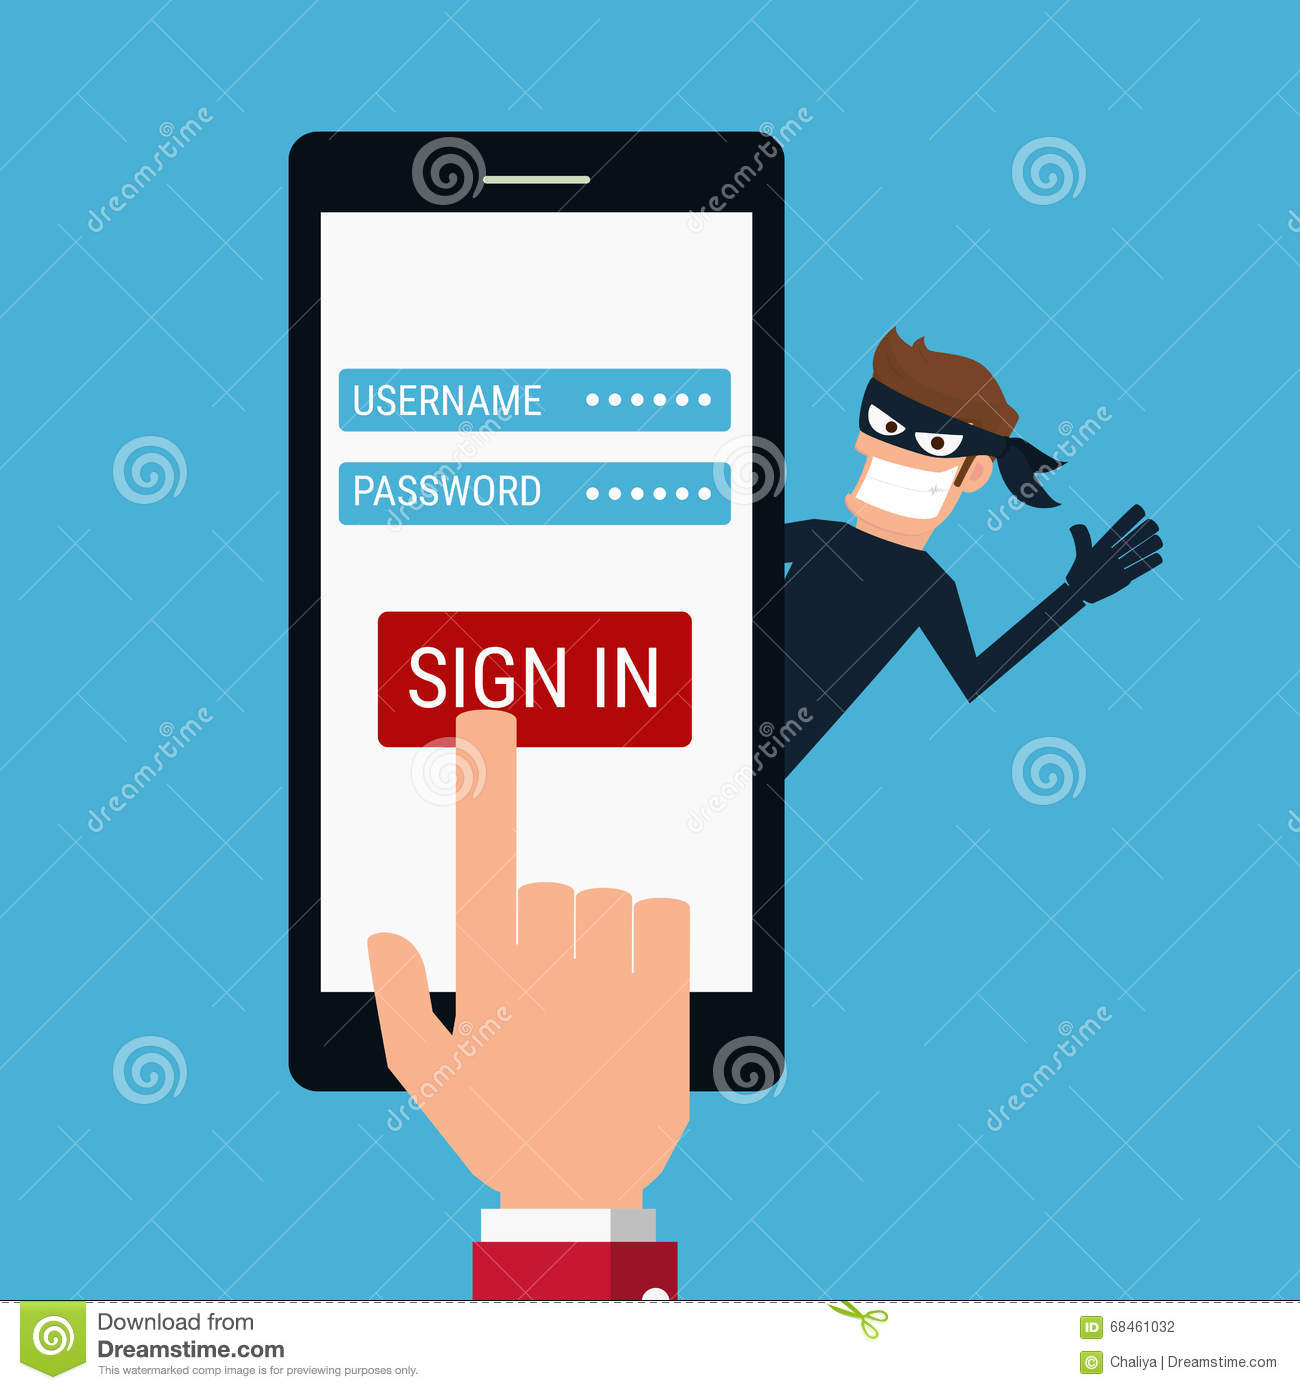 Thief. Hacker stealing sensitive data as passwords from a smartphone useful for anti phishing and internet viruses campaigns.